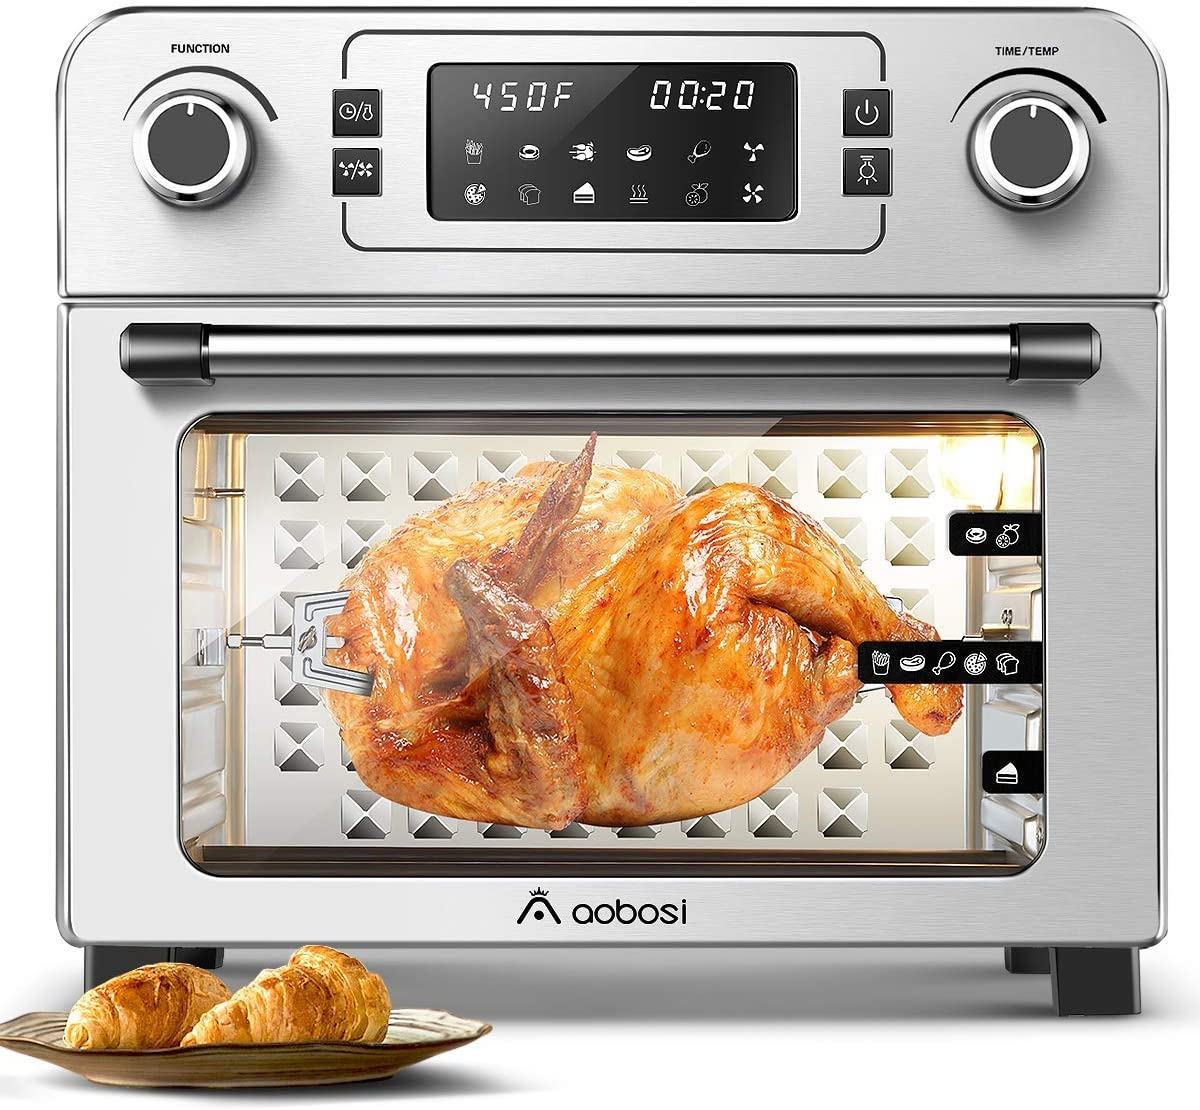 Aobosi Toaster Oven Air Fryer Oven Toaster Convection Oven Digital Countertop Rotisserie Oven Pizza Oven 10-in-1 Multi-Function Toast/Roast/Broil/Bake/Dehydrate Large 24Qt Recipe 1700W 16x13x16